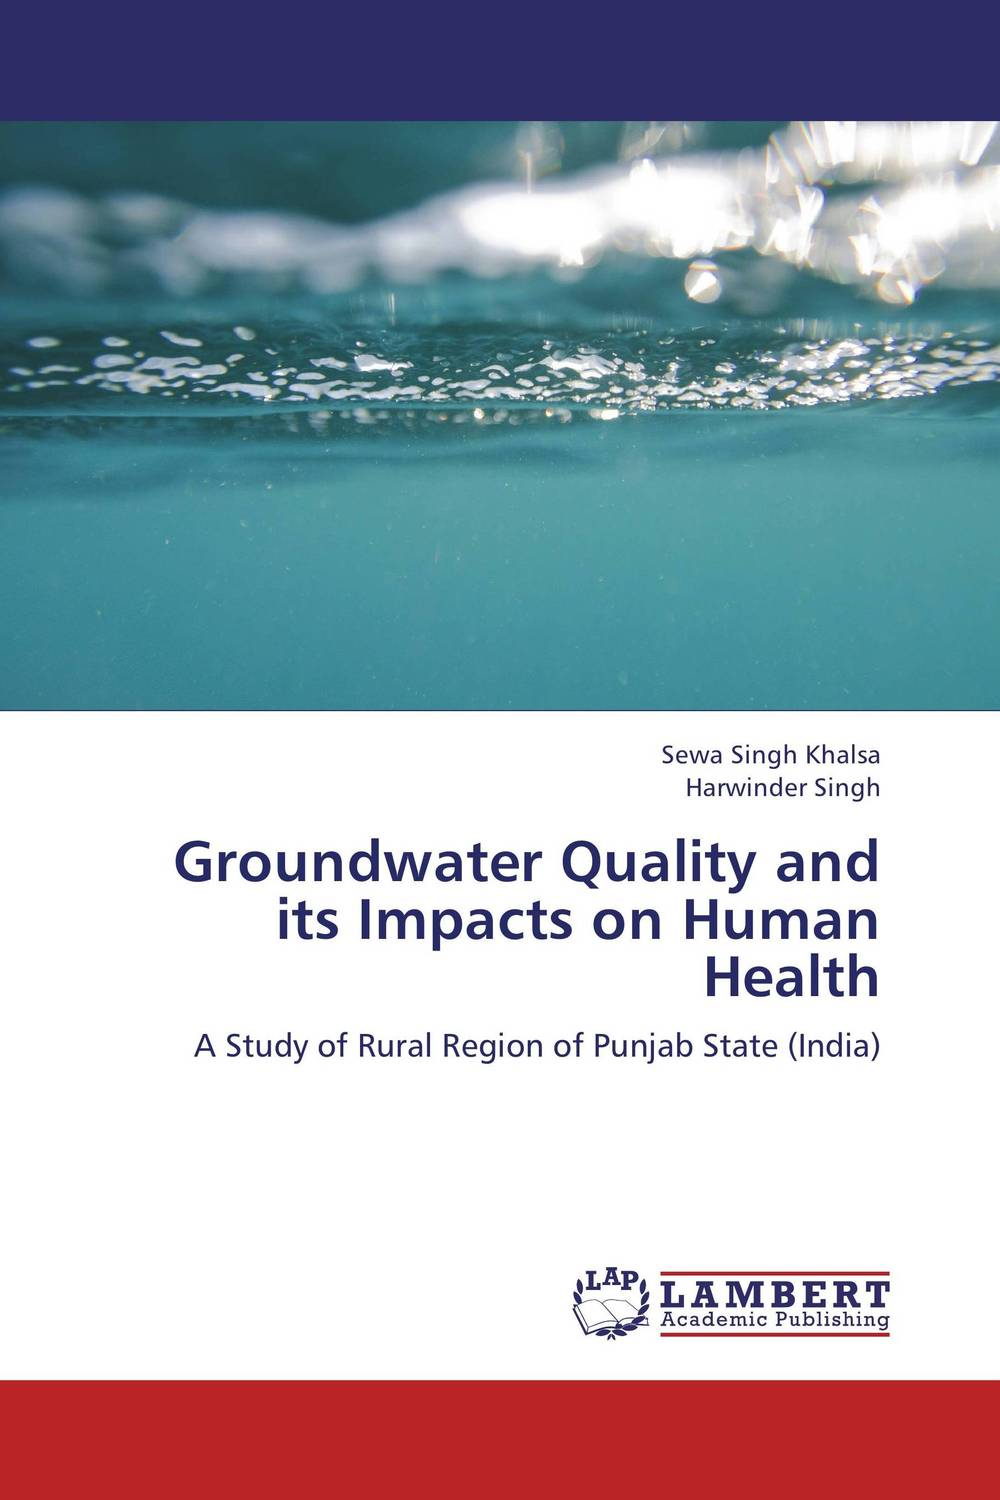 Groundwater Quality and its Impacts on Human Health